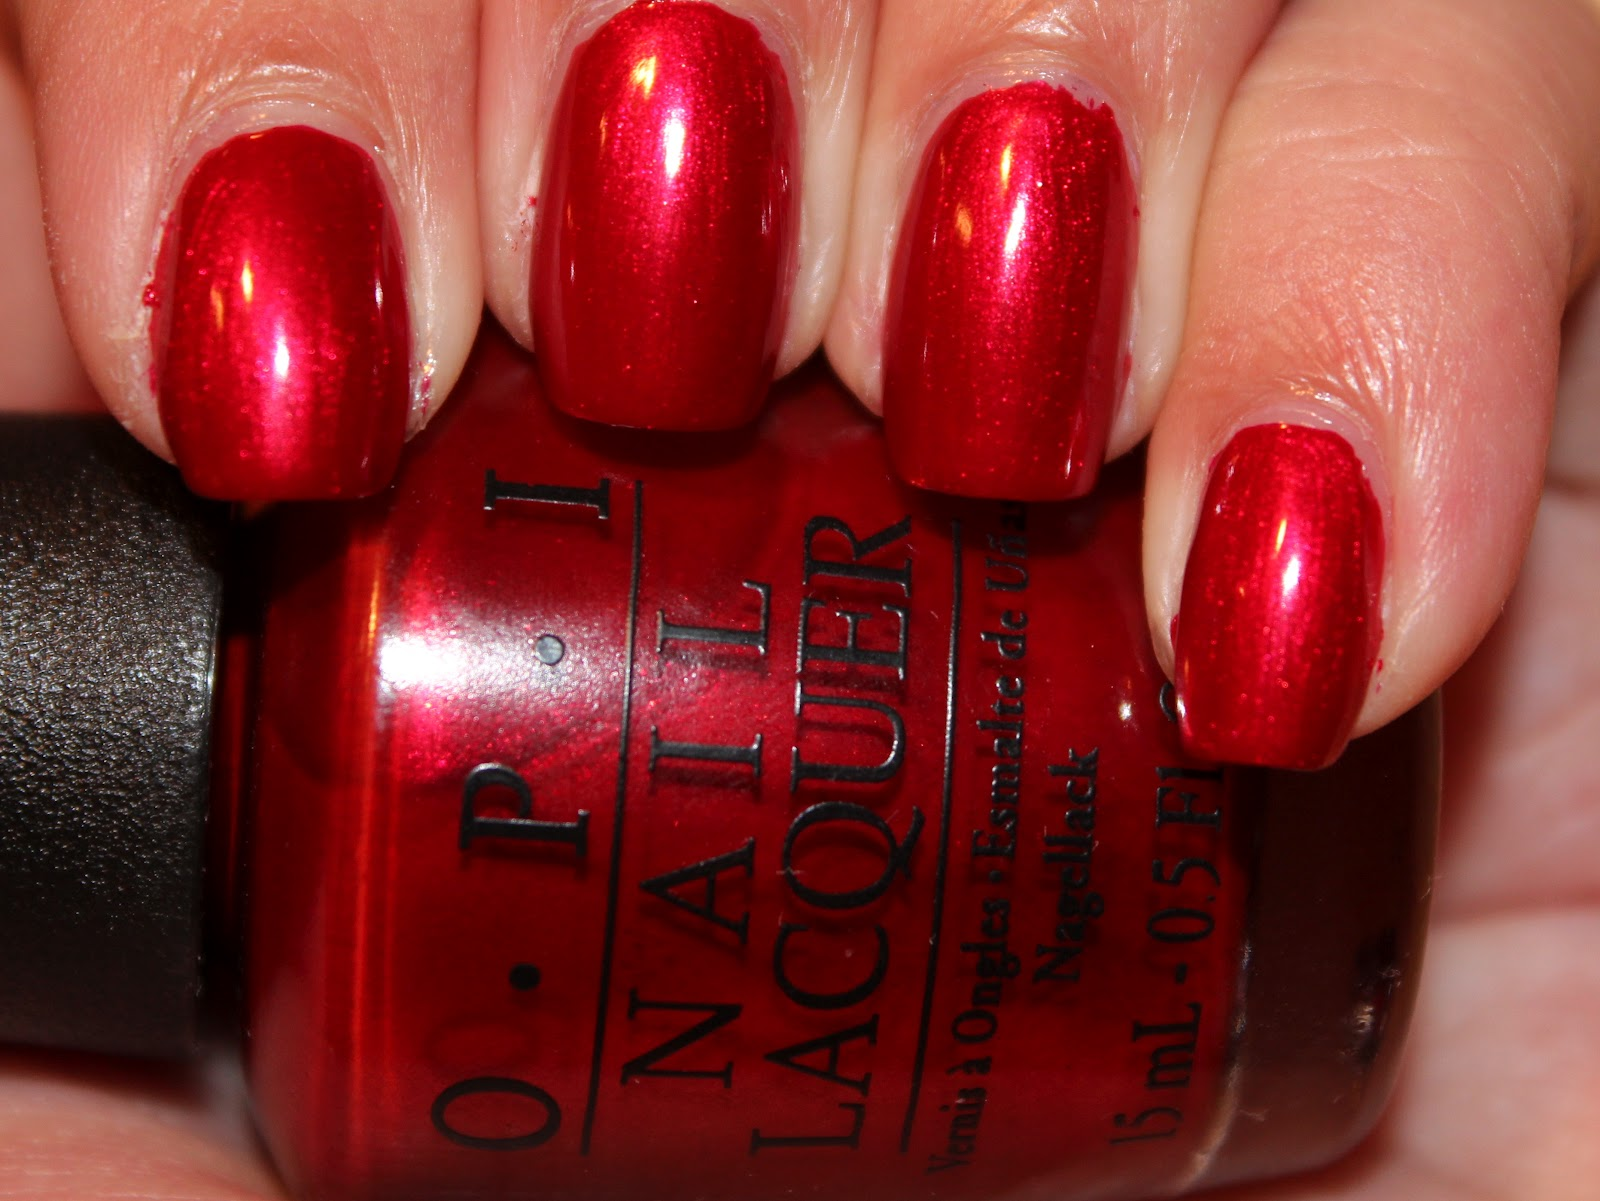 NOTW: OPI Danke-Shiny Red – yukieloves.com